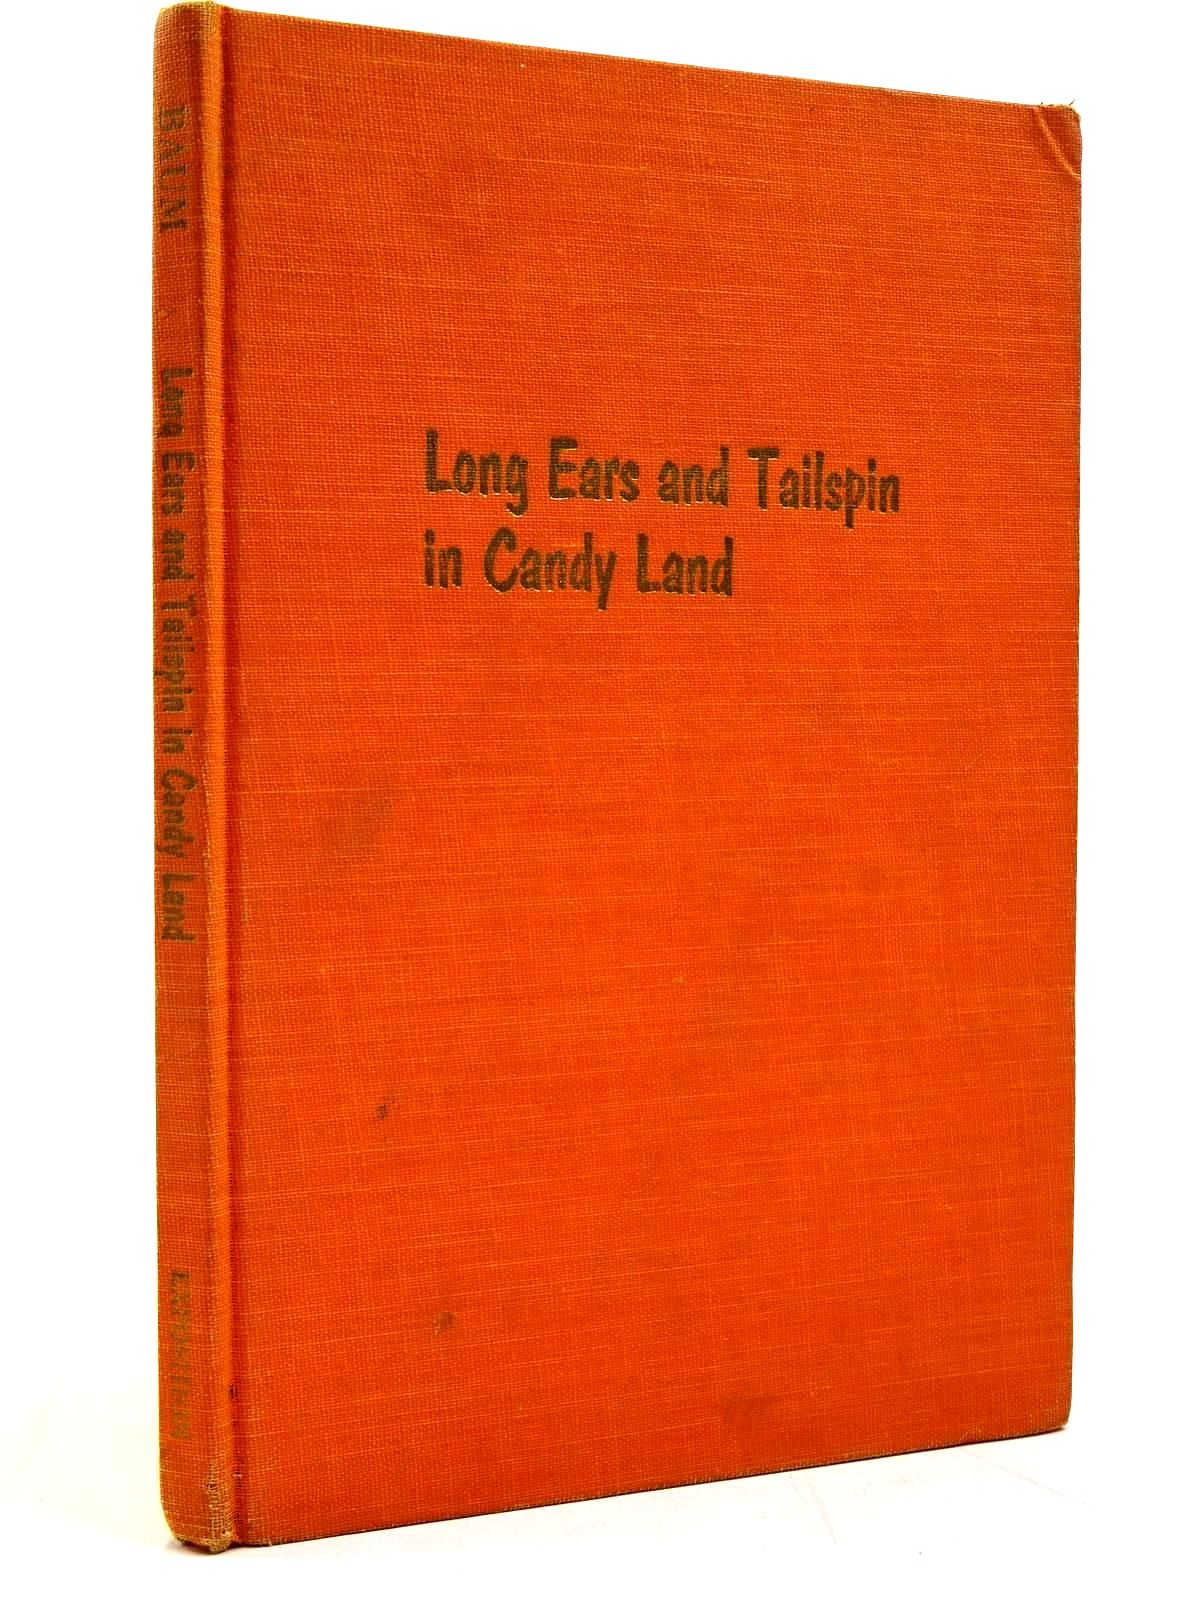 Photo of LONG EARS AND TAILSPIN IN CANDY LAND written by Baum, Roger S. illustrated by Farmer, Mary Ann published by Exposition Press (STOCK CODE: 2131118)  for sale by Stella & Rose's Books